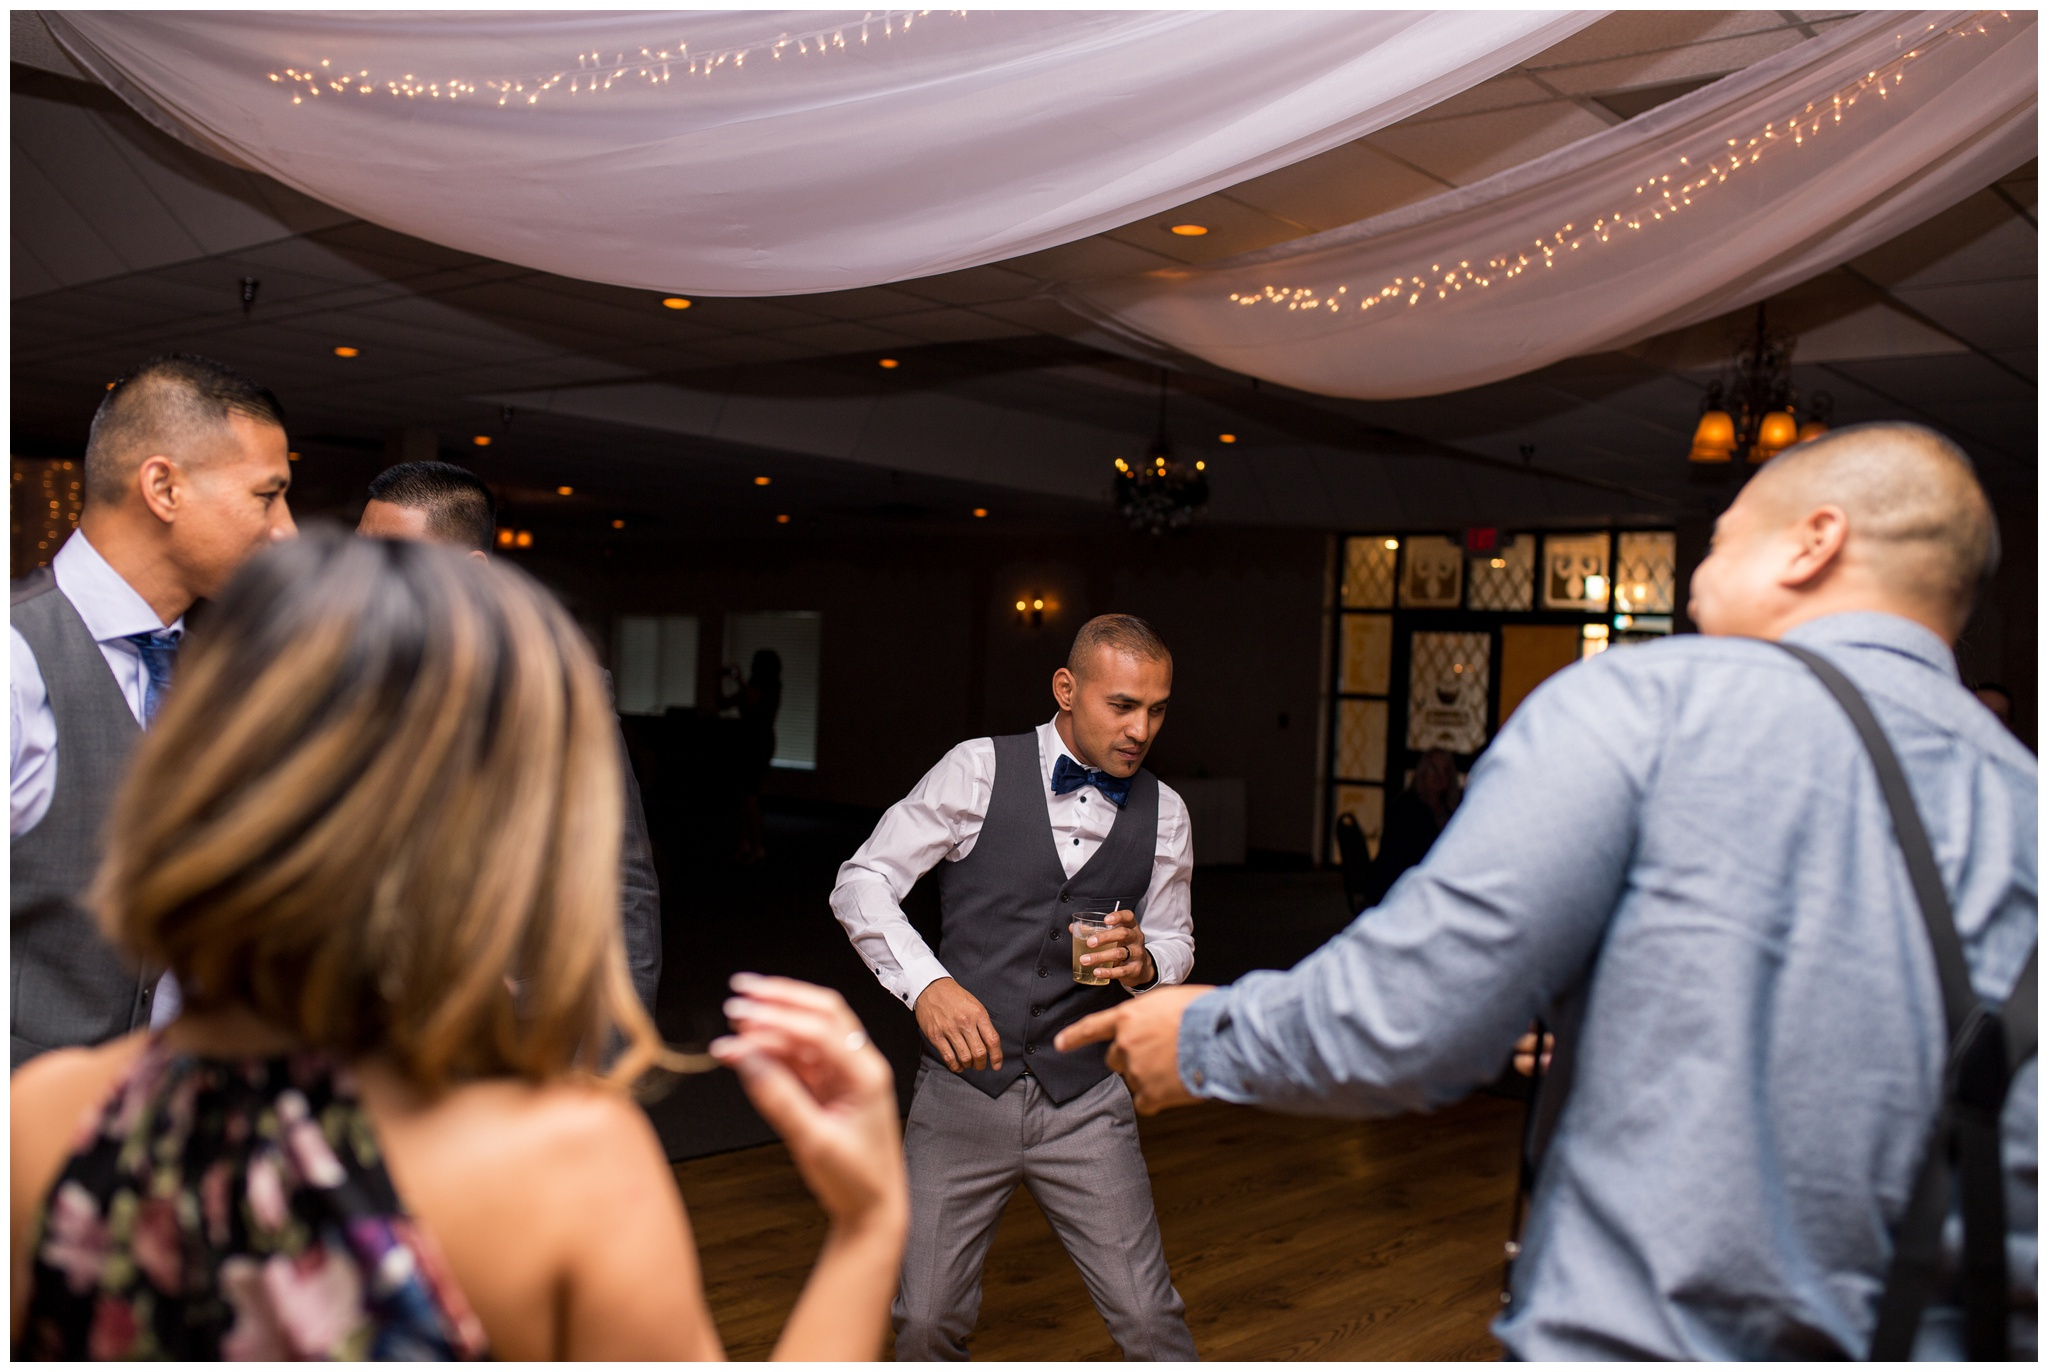 groom dancing during wedding reception at Romer's Catering in Greenville Ohio